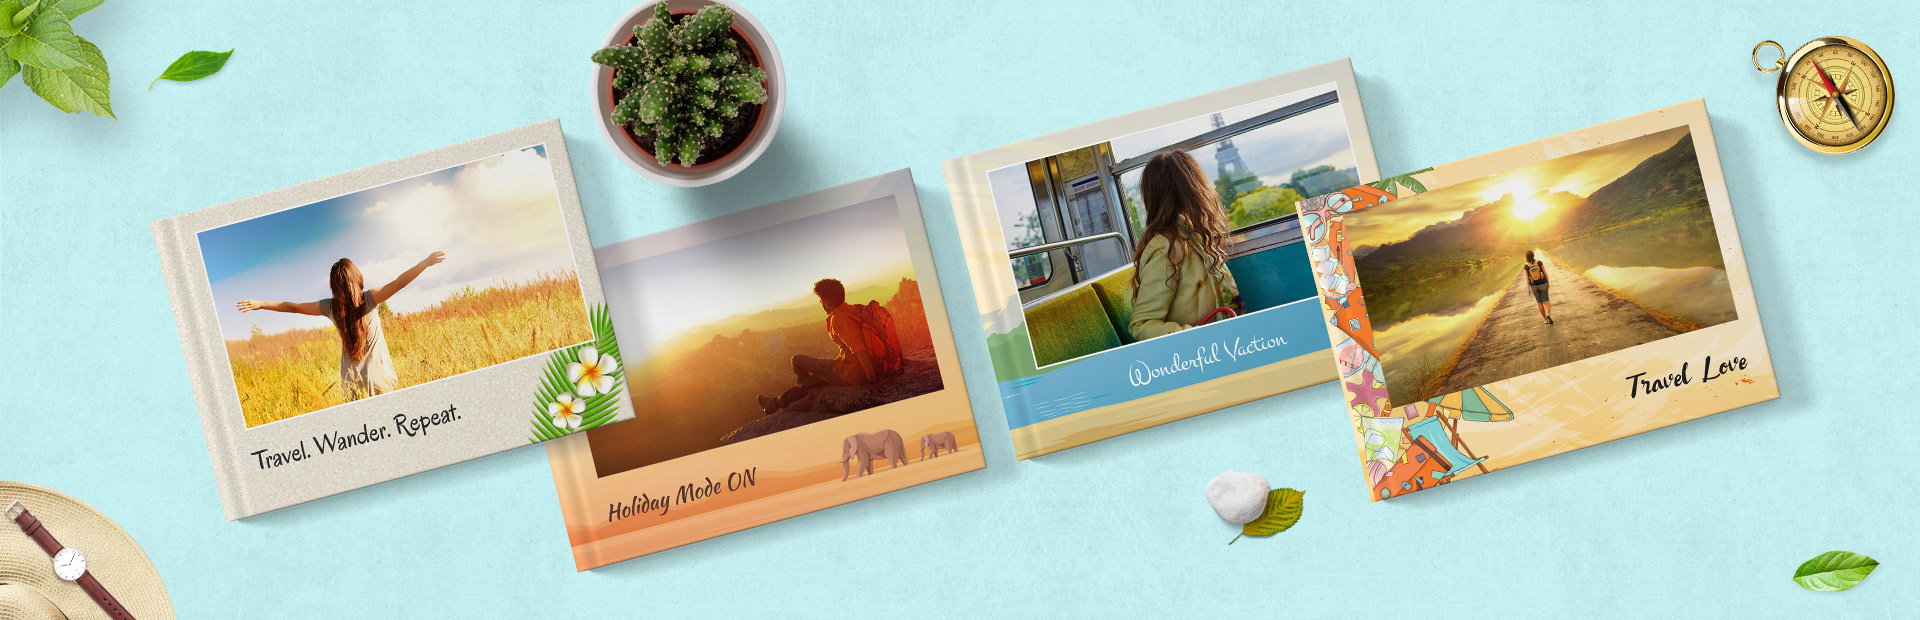 Travel Photo Book Themes